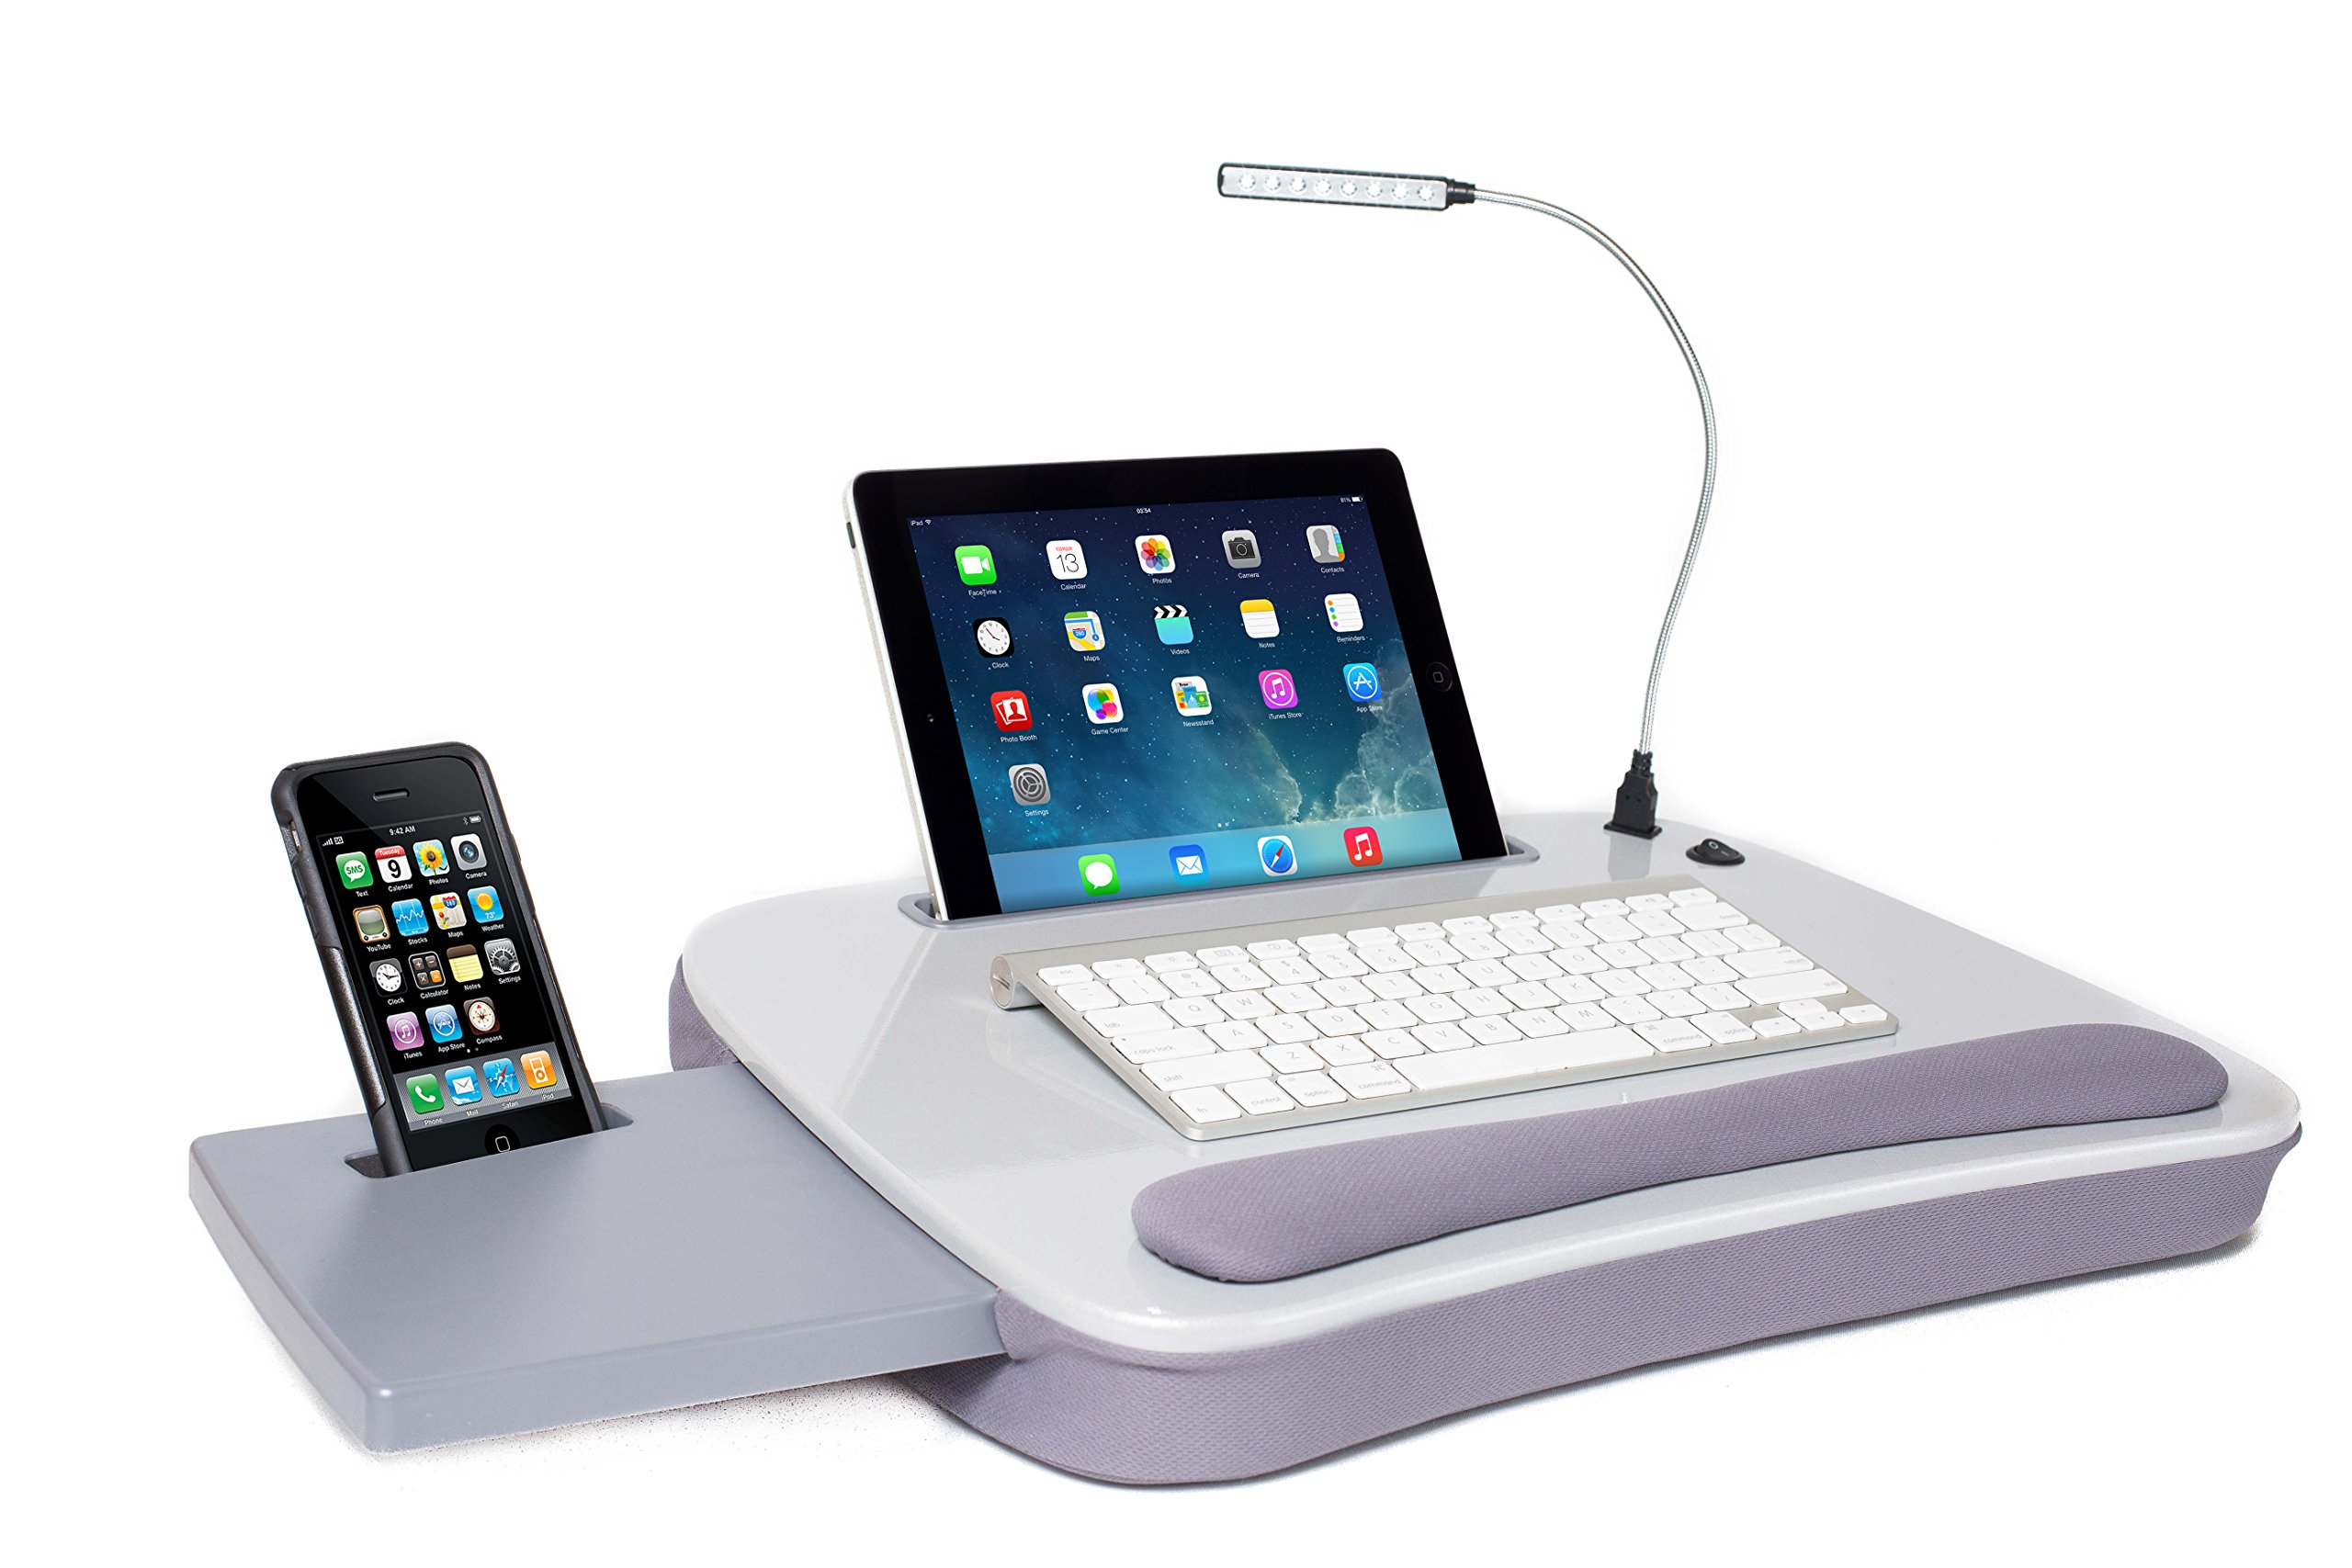 Sofia + Sam Multi Tasking Memory Foam Lap Desk with USB Light (Silver)   Supports Laptops Up To 15 Inches